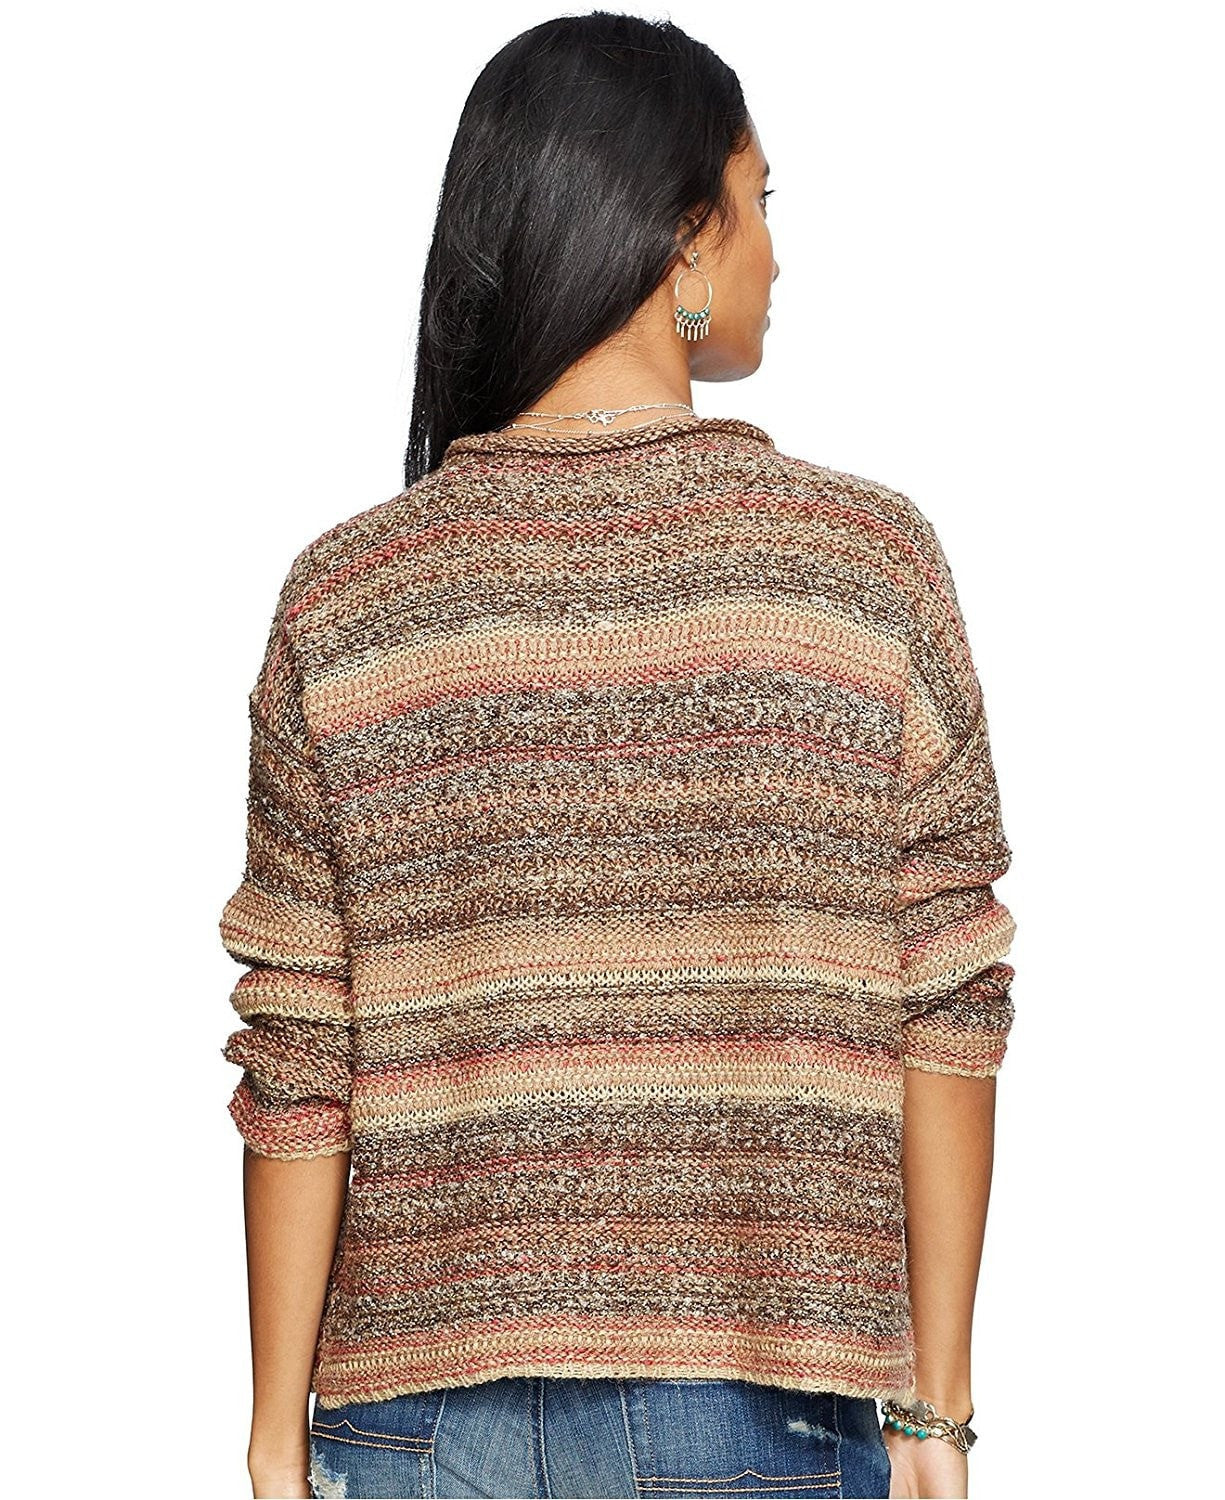 Denim & Supply Ralph Lauren Striped Crewneck Sweater Brown Multi M